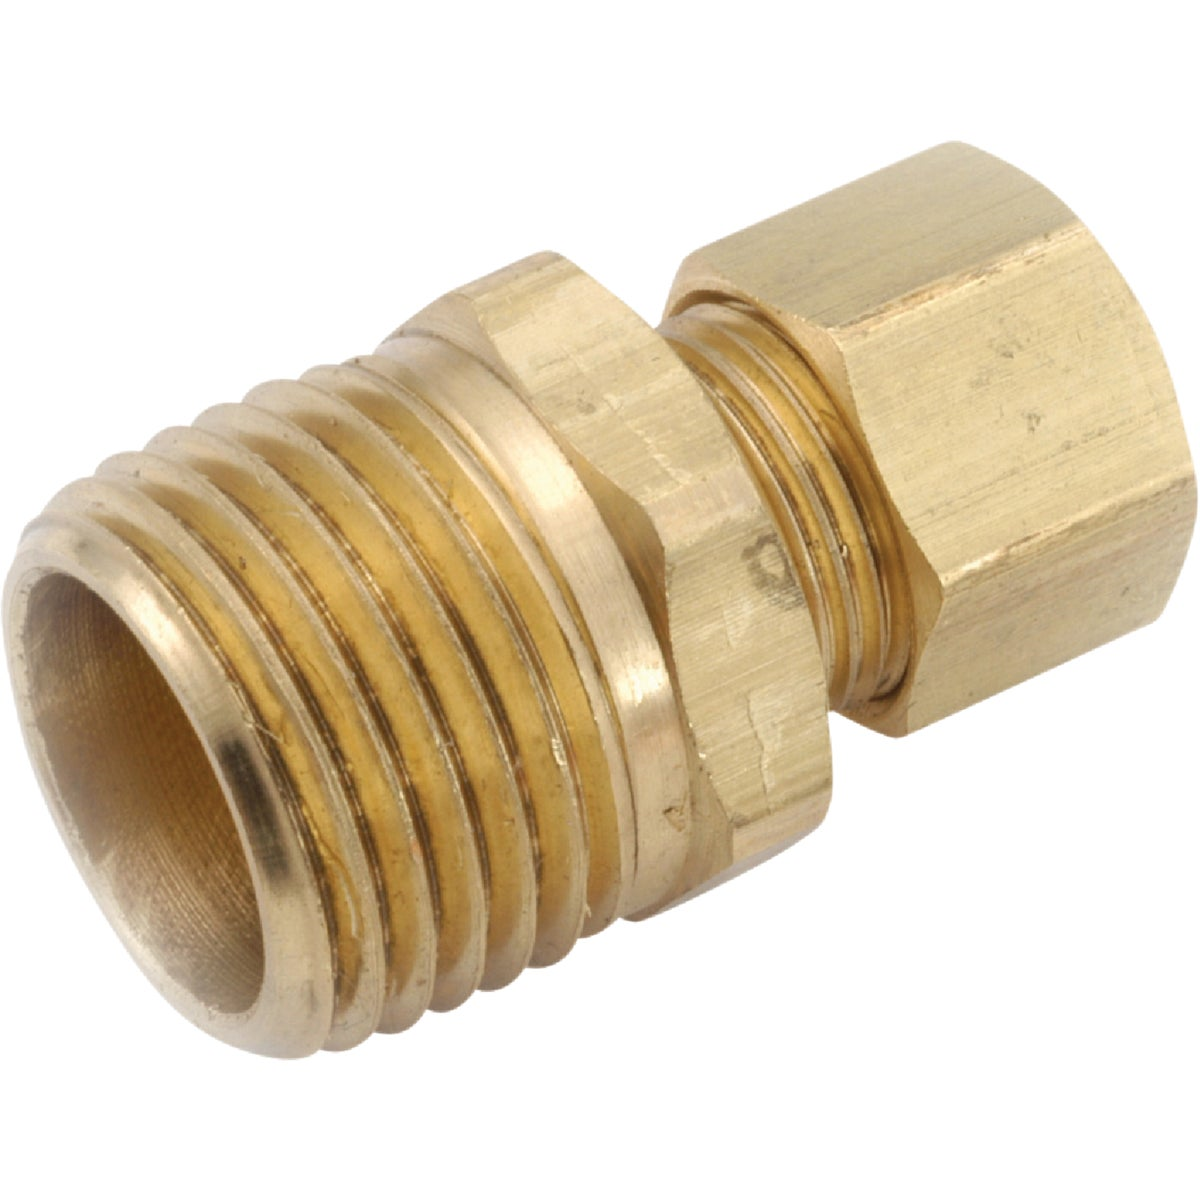 3/16X1/4 MALE CONNECTOR - 750068-0304 by Anderson Metals Corp